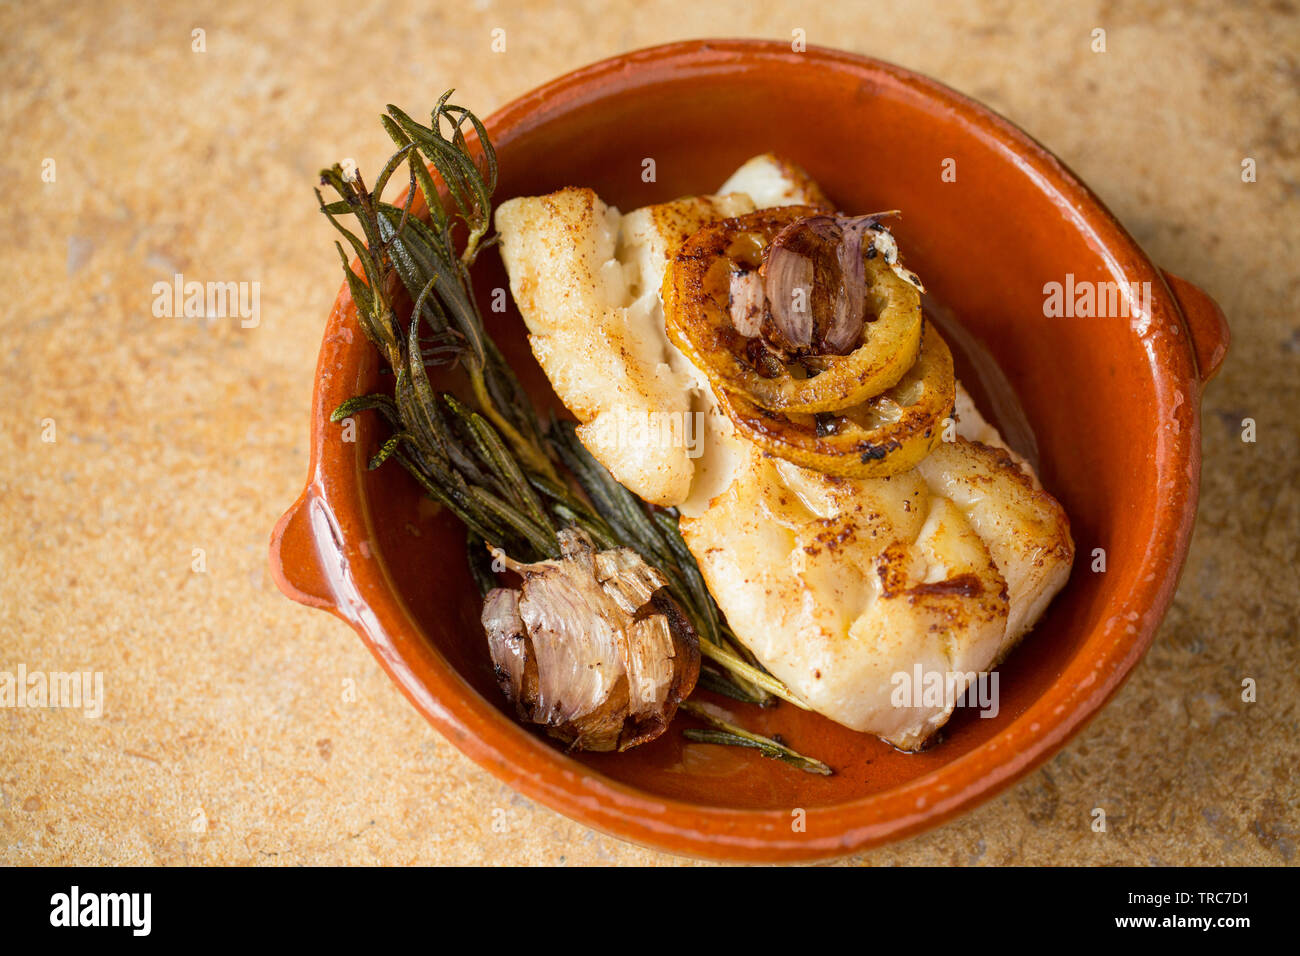 A cooked, thick fillet of pollack, Pollachius pollachius, that was caught on rod and line from a boat in the English Channel. It has been fried in oil - Stock Image